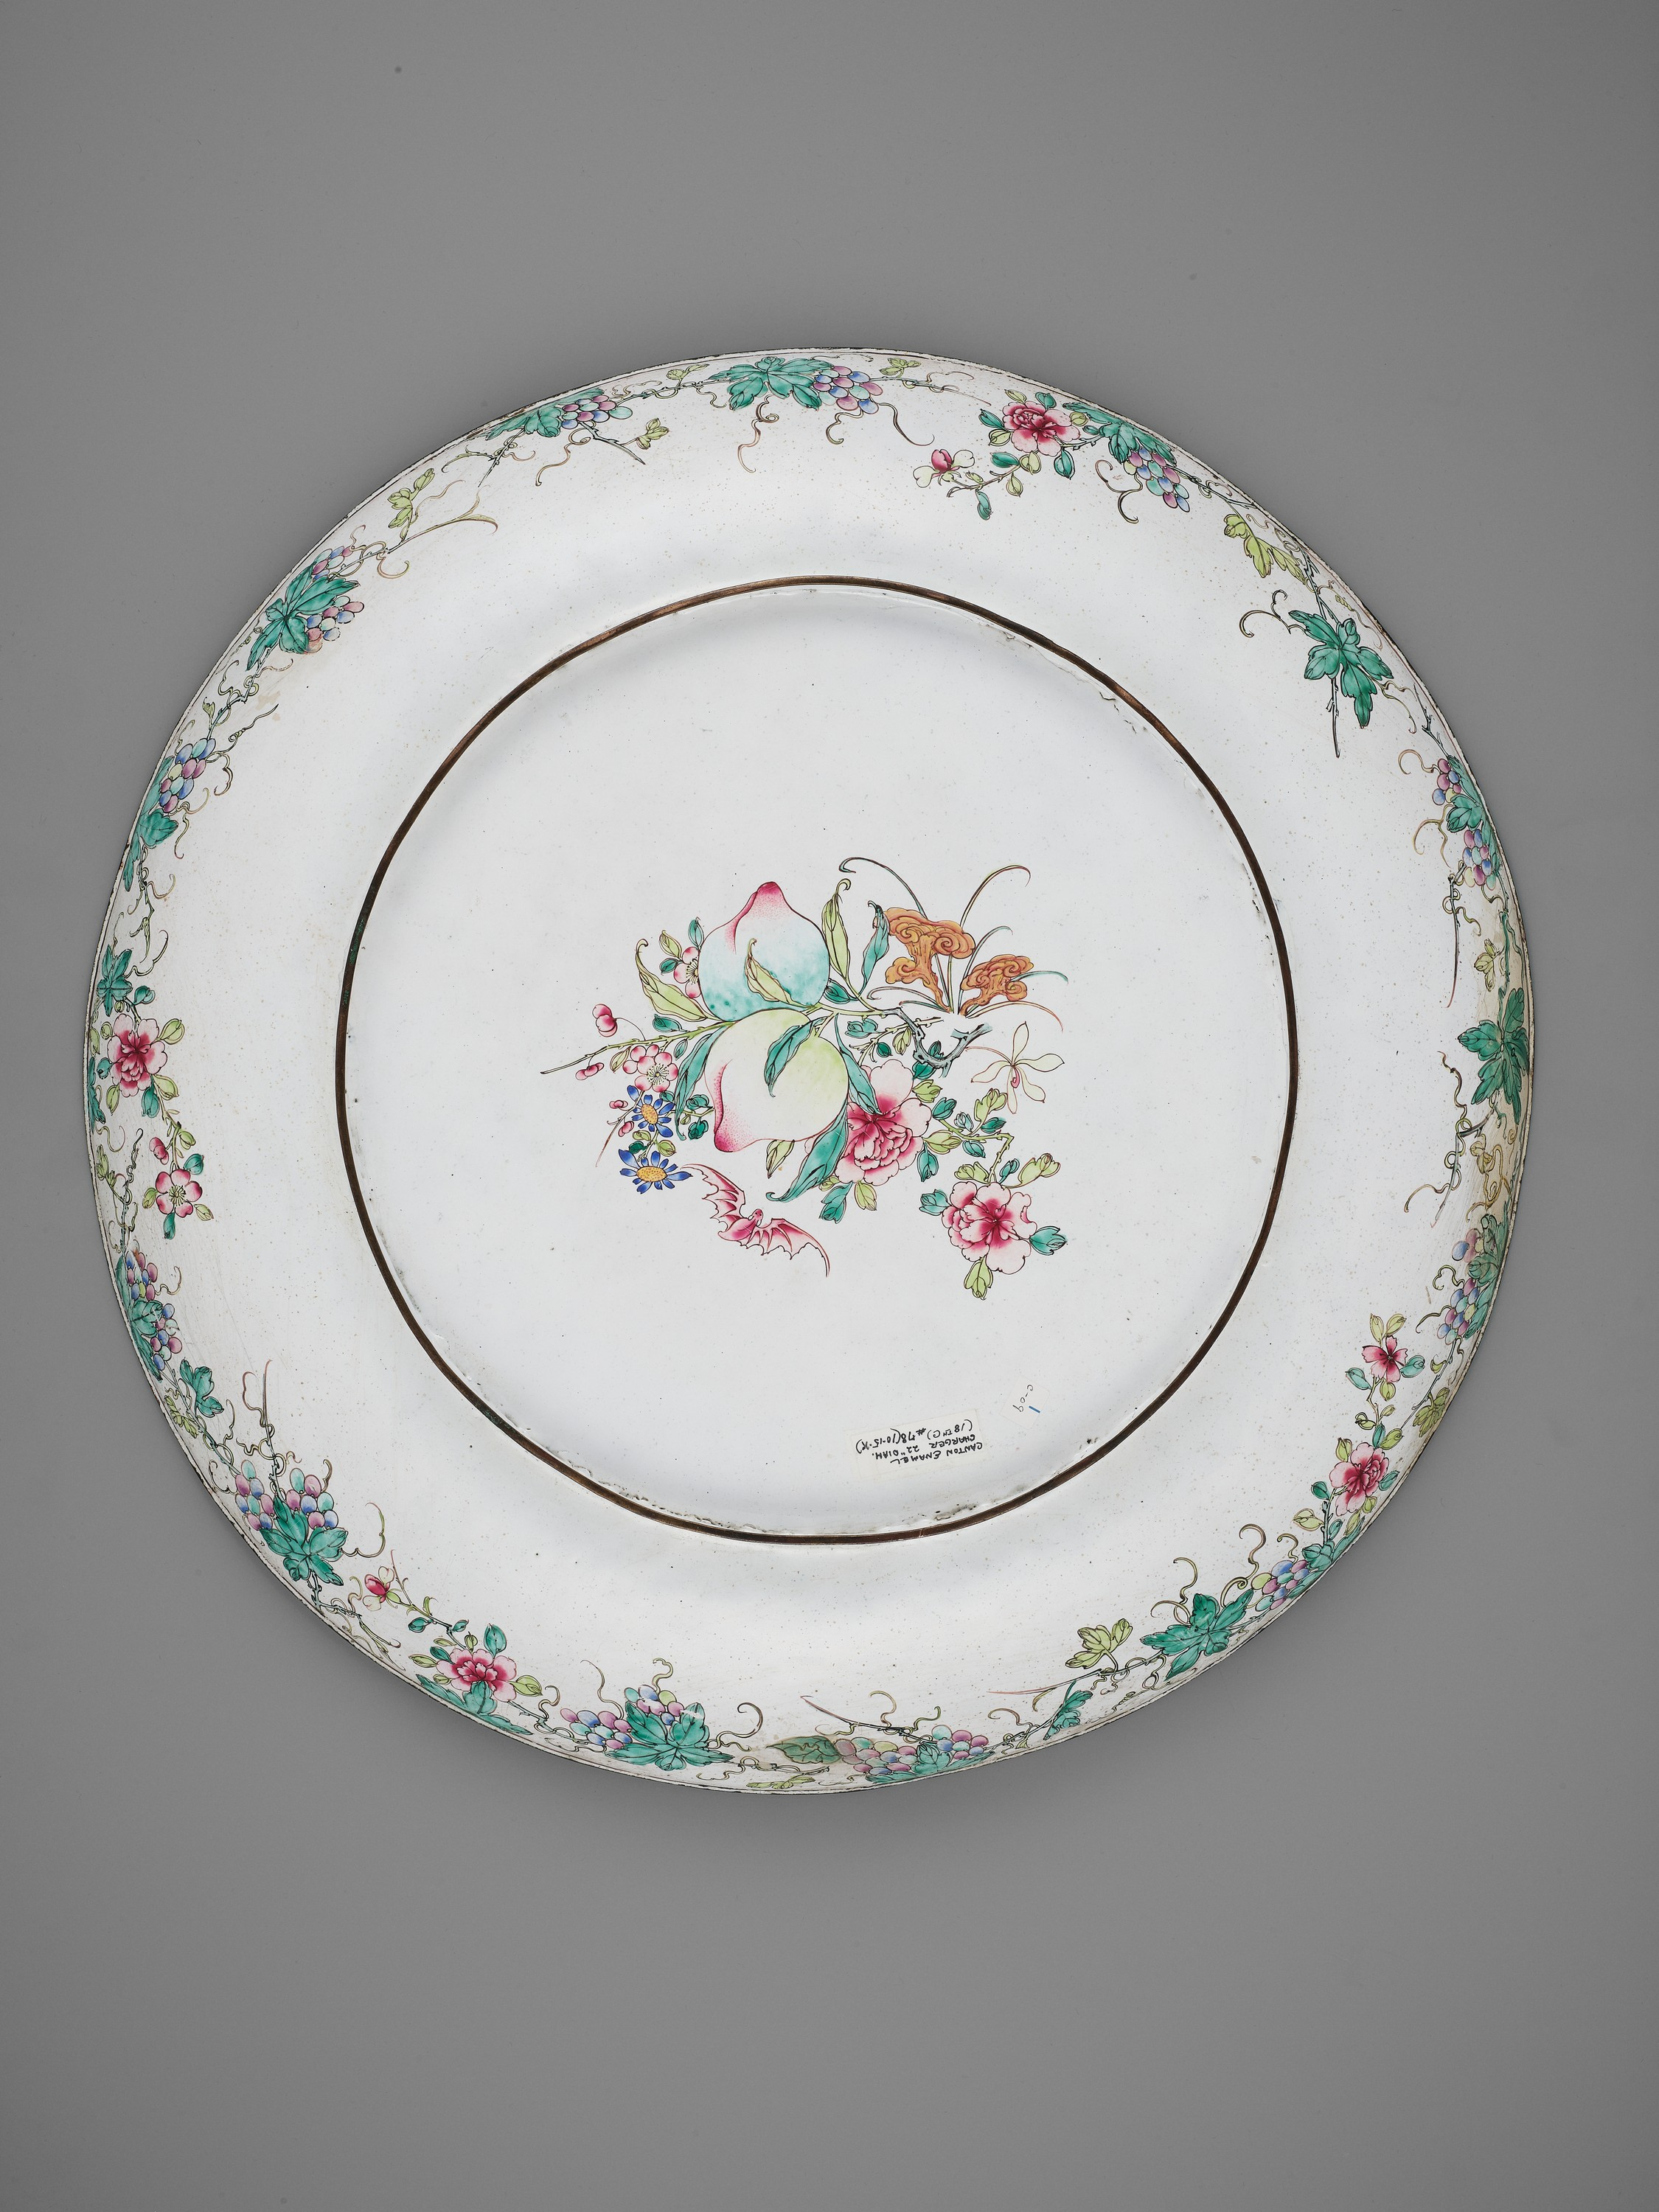 AN EXCEPTIONAL AND VERY LARGE CANTON ENAMEL 'SCHOLARS' DISH, EARLY 18TH CENTURY - Image 9 of 12